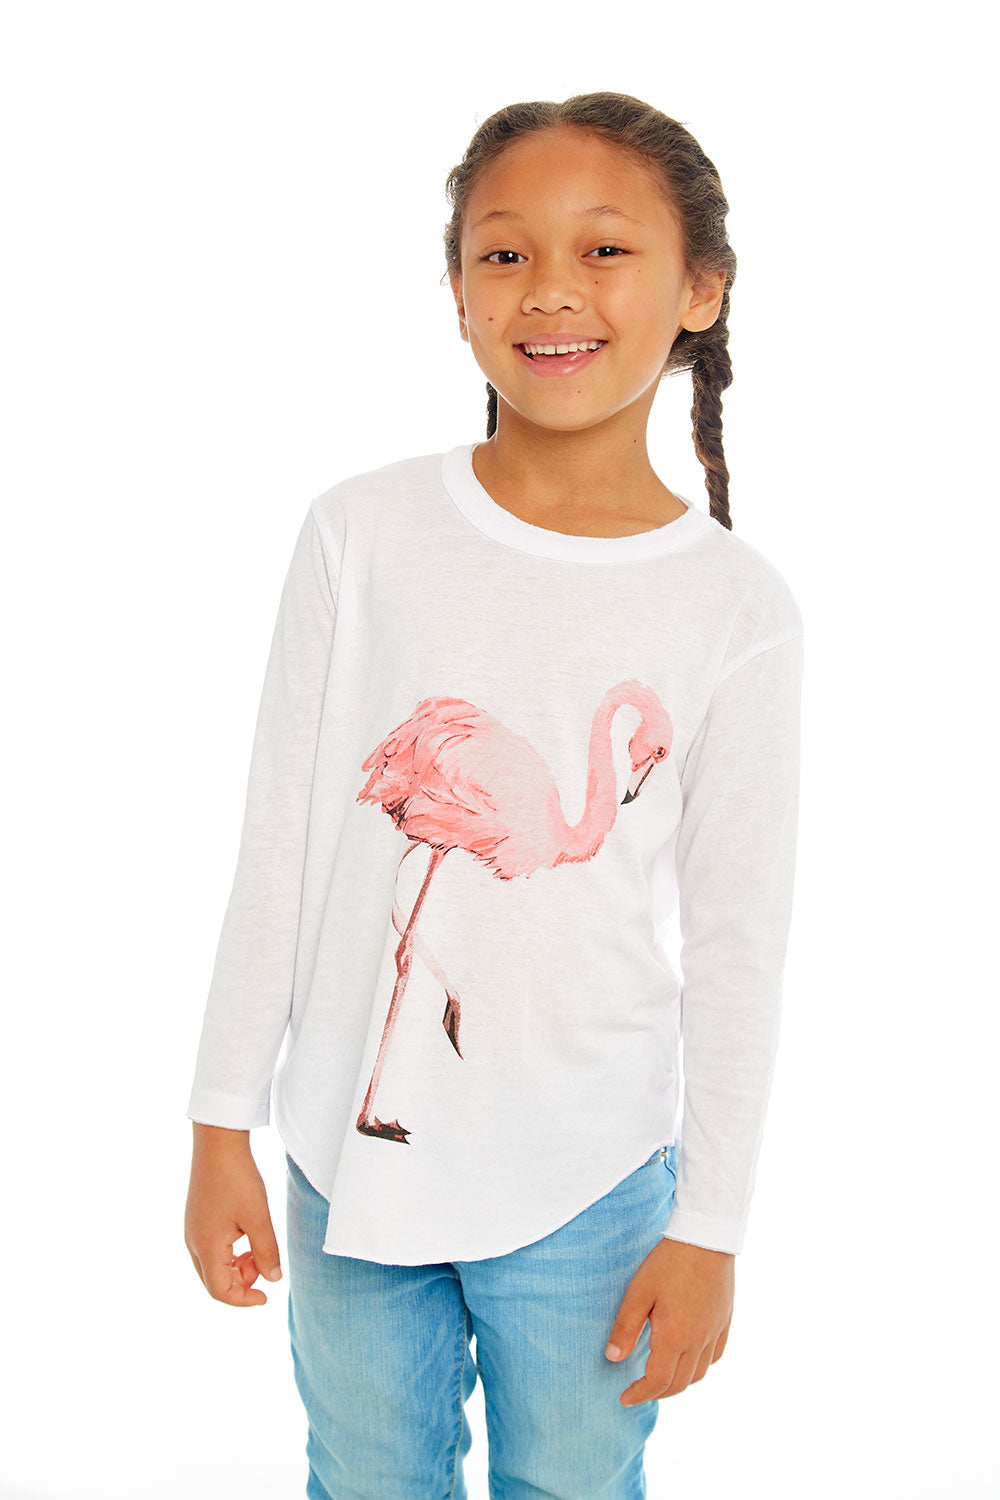 Watercolor Flamingo, GIRLS, chaserbrand.com,chaser clothing,chaser apparel,chaser los angeles